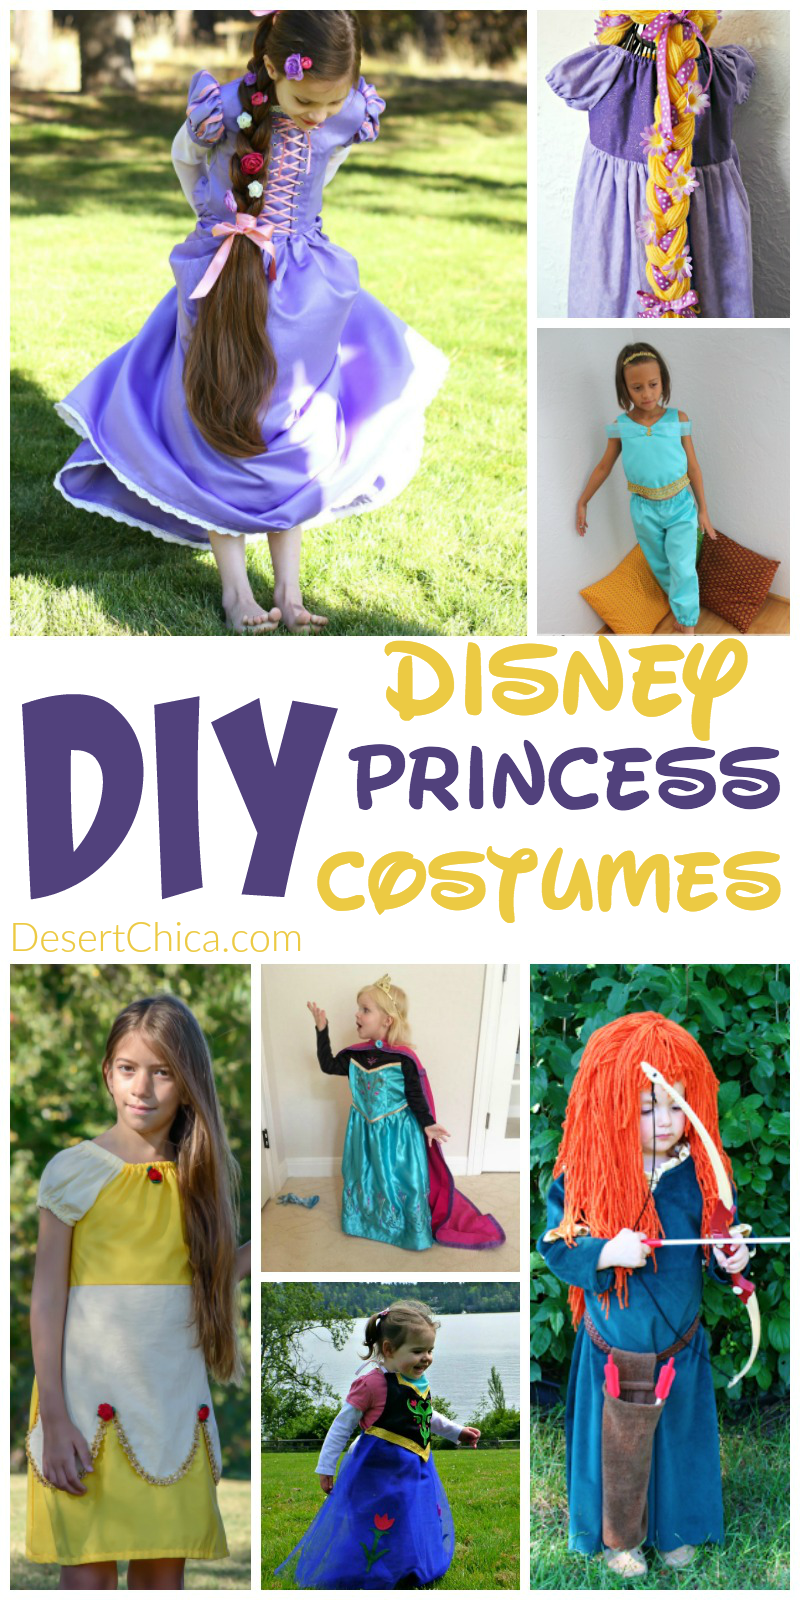 Diy disney princess costumes desert chica diy disney princess costumes solutioingenieria Images